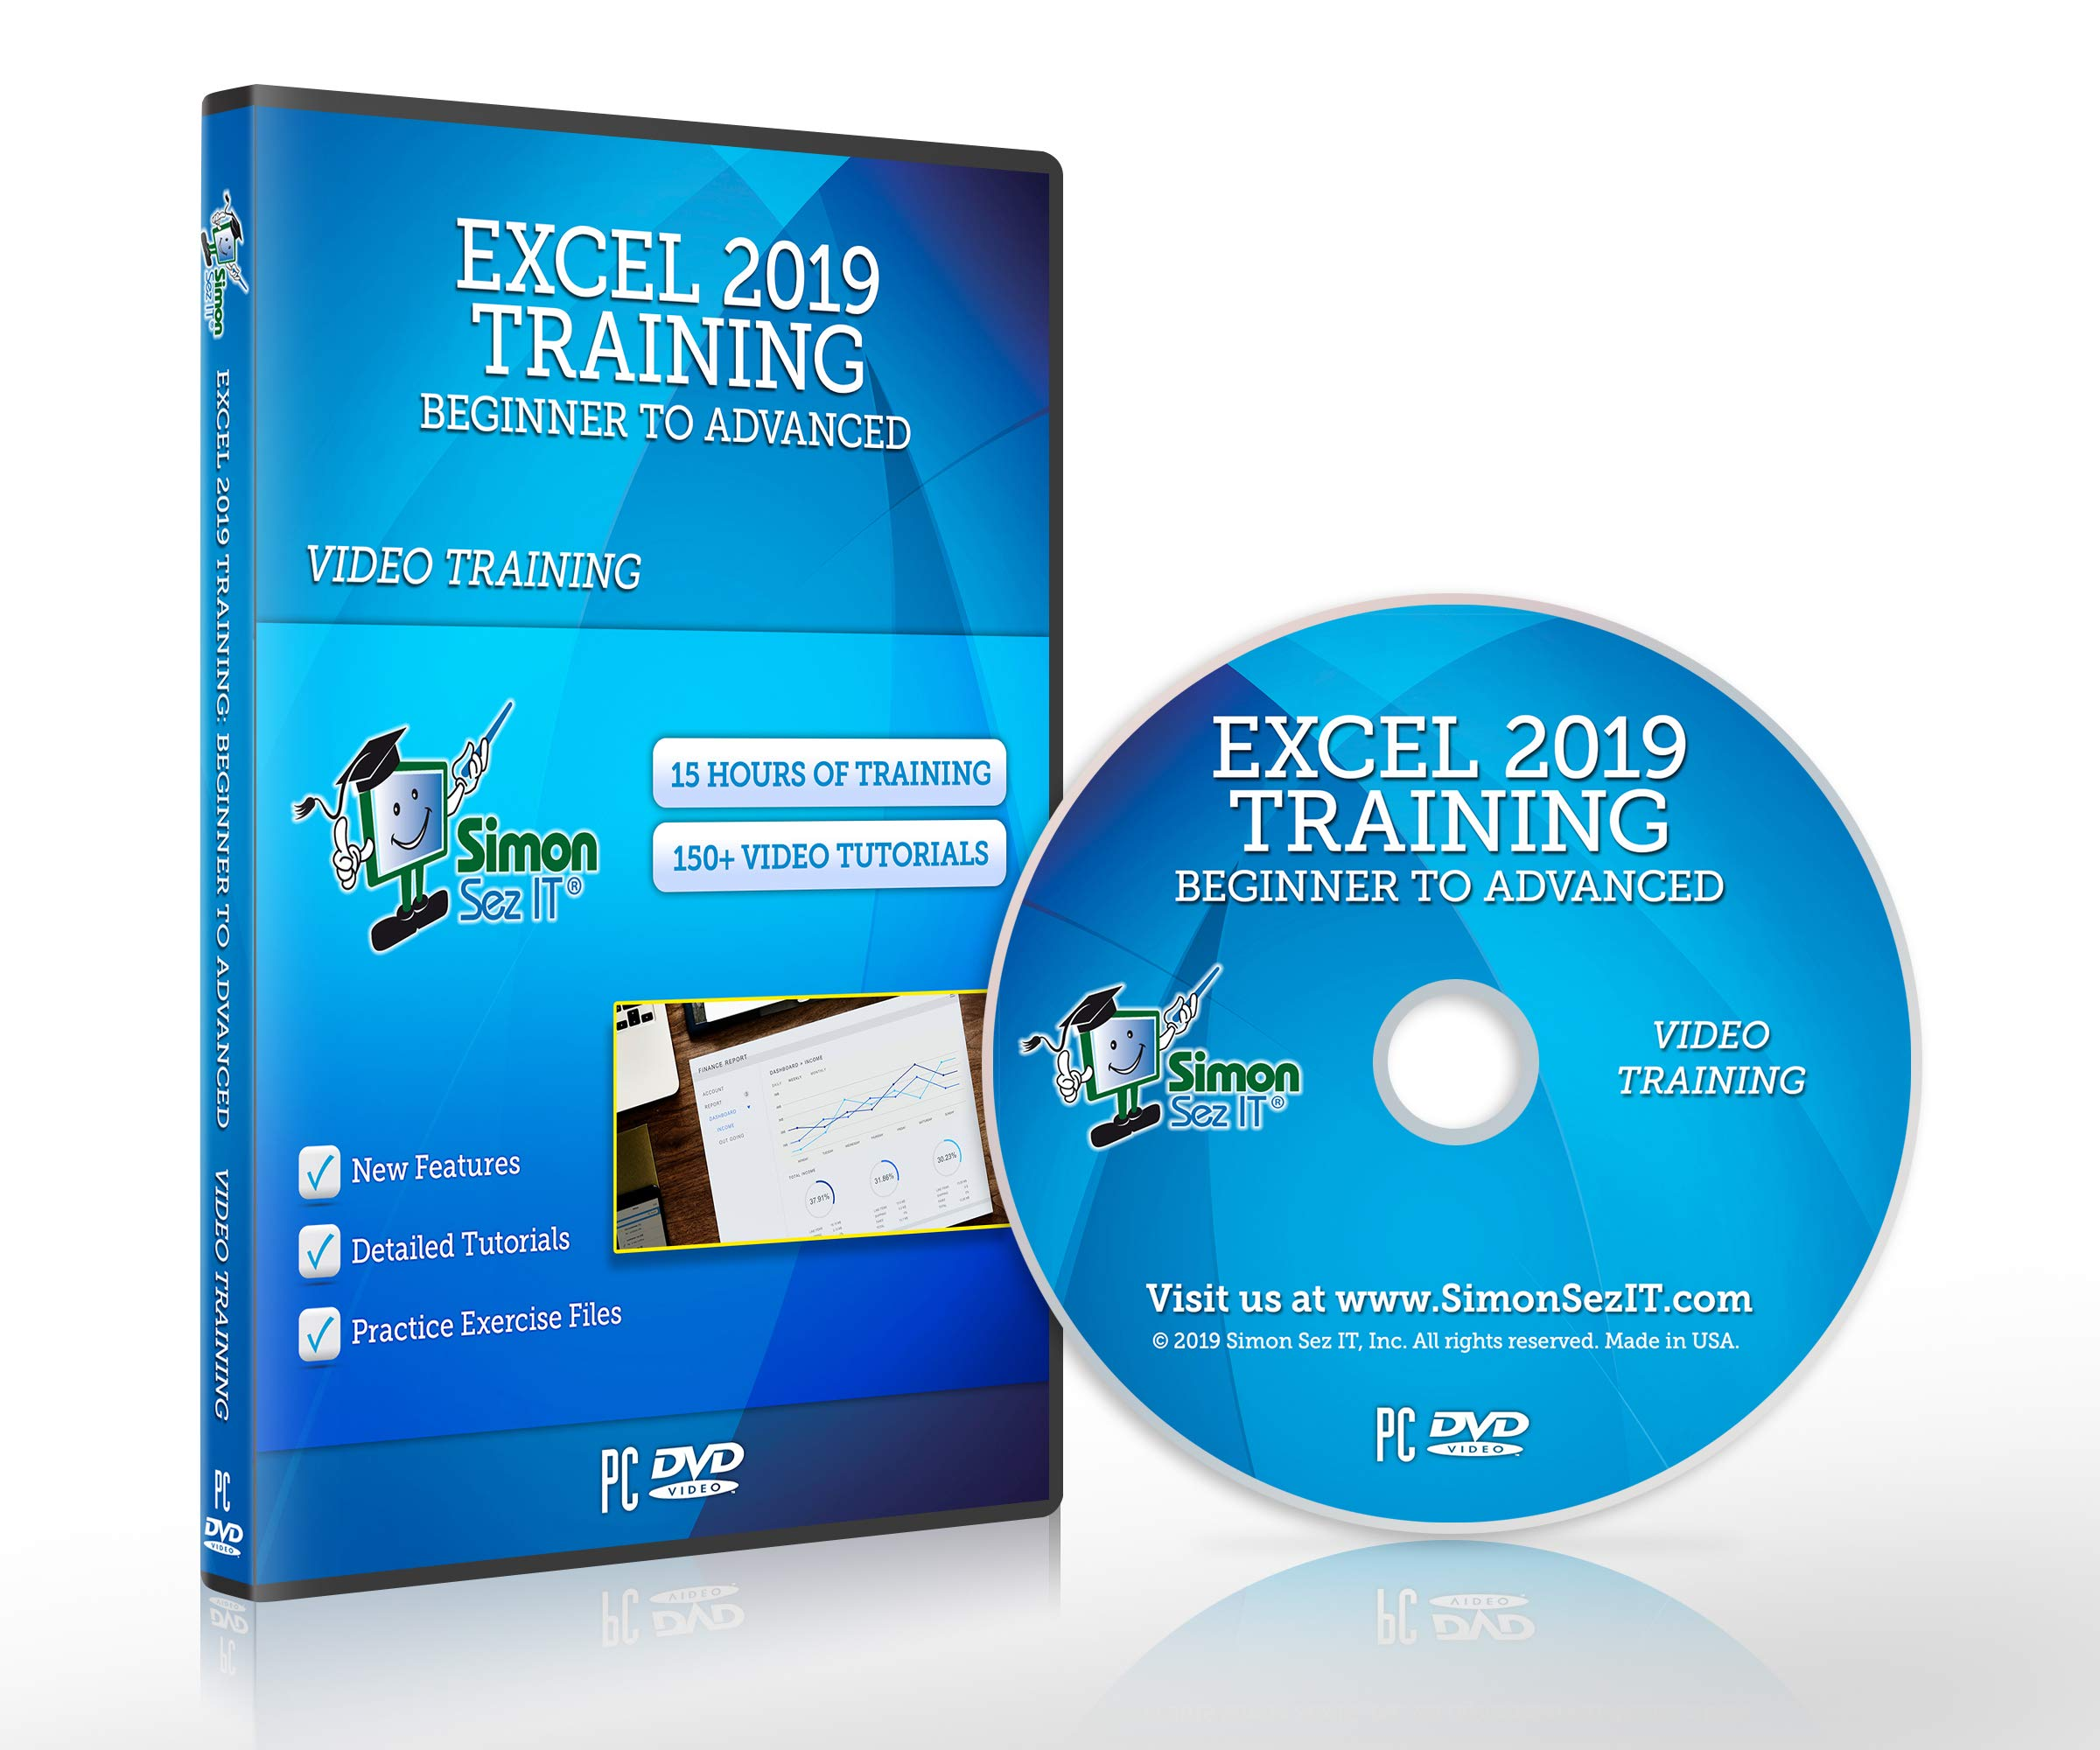 Excel 2019 Training DVD by Simon Sez IT: Excel Tutorial For Absolute Beginners to Advanced Users - Excel Course Including Exercise Files by Simon Sez IT